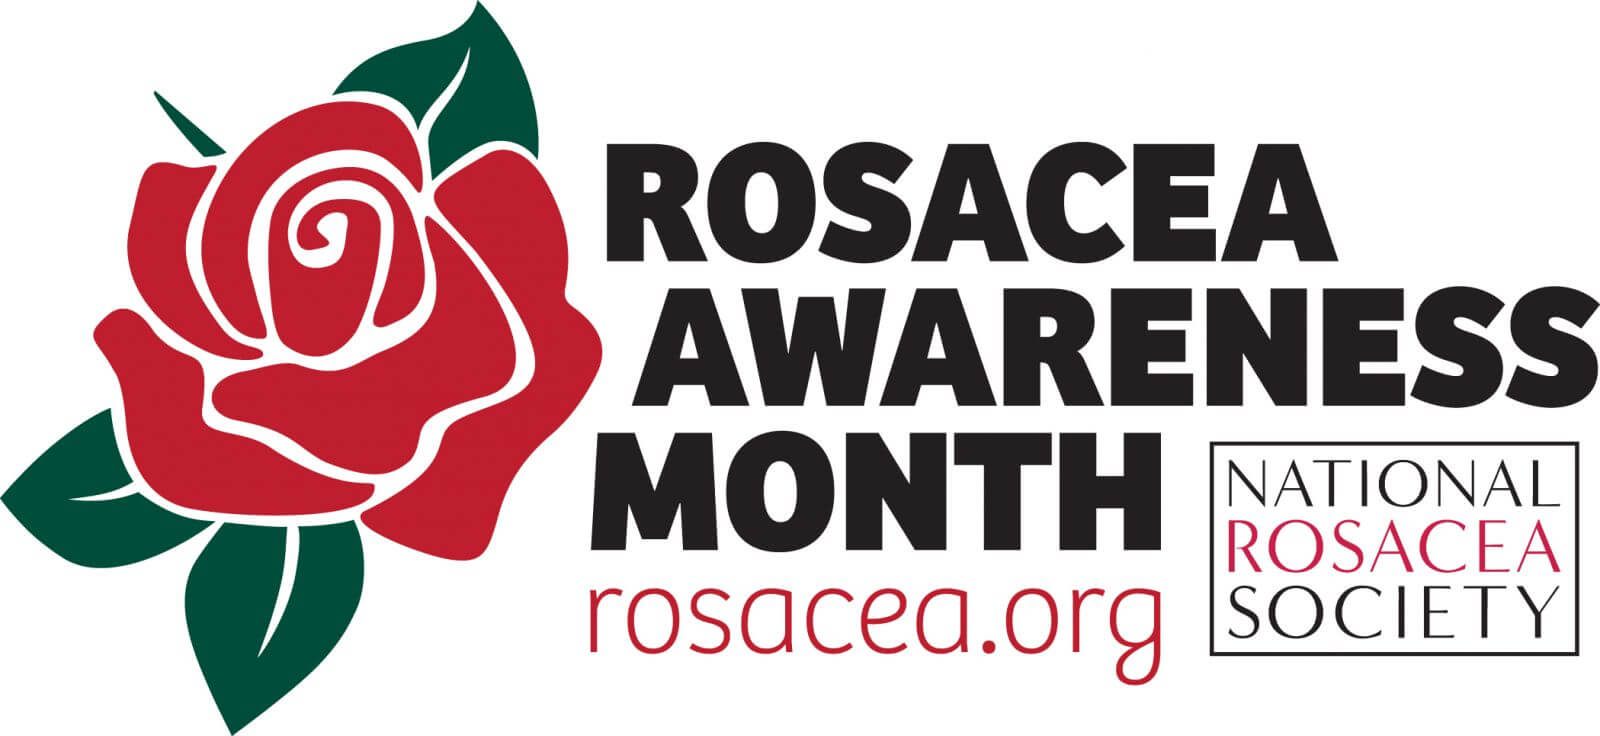 Rosacea Awareness Month Brings Focus to Common Skin Disease image